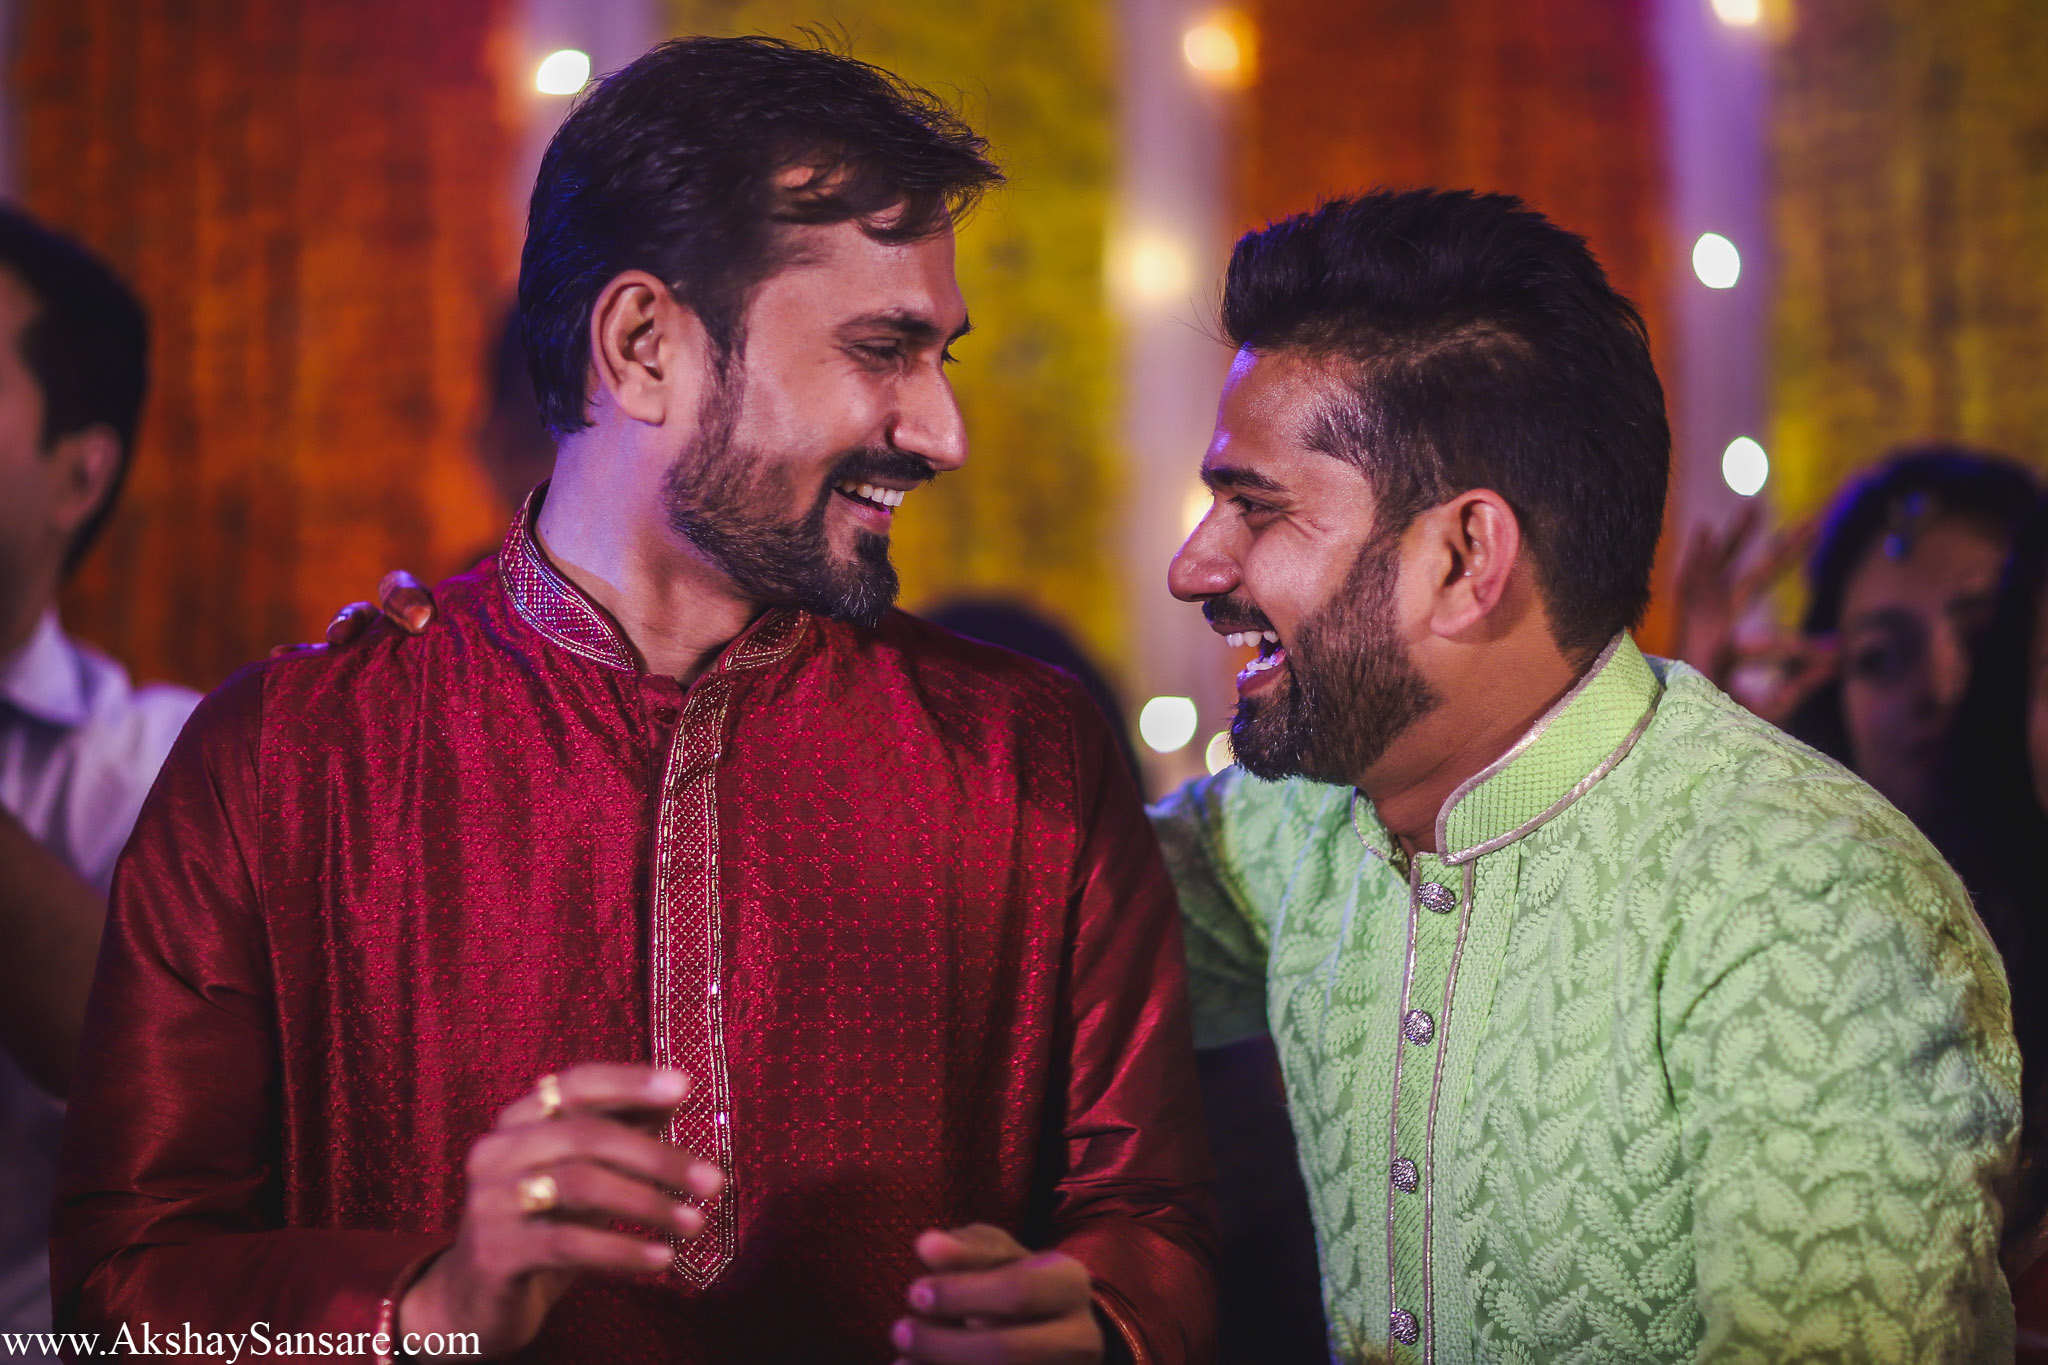 Ajay & Devika Akshay Sansare Photography Best Candid wedding photographer in mumbai india13.jpg